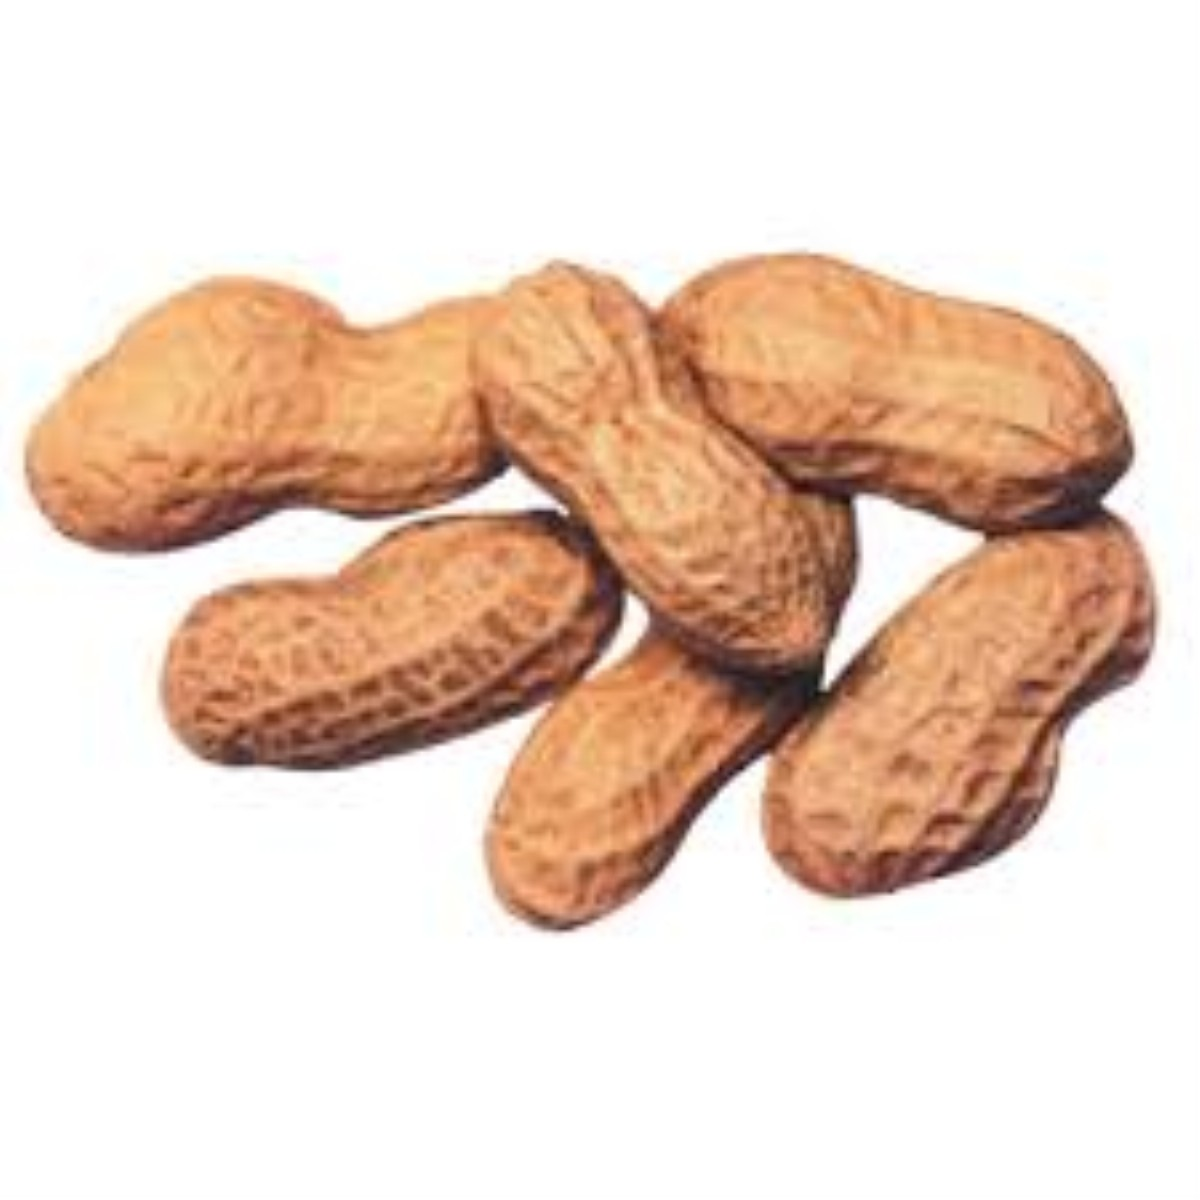 Peanut allergy breakthrough welcomed in East Lancs